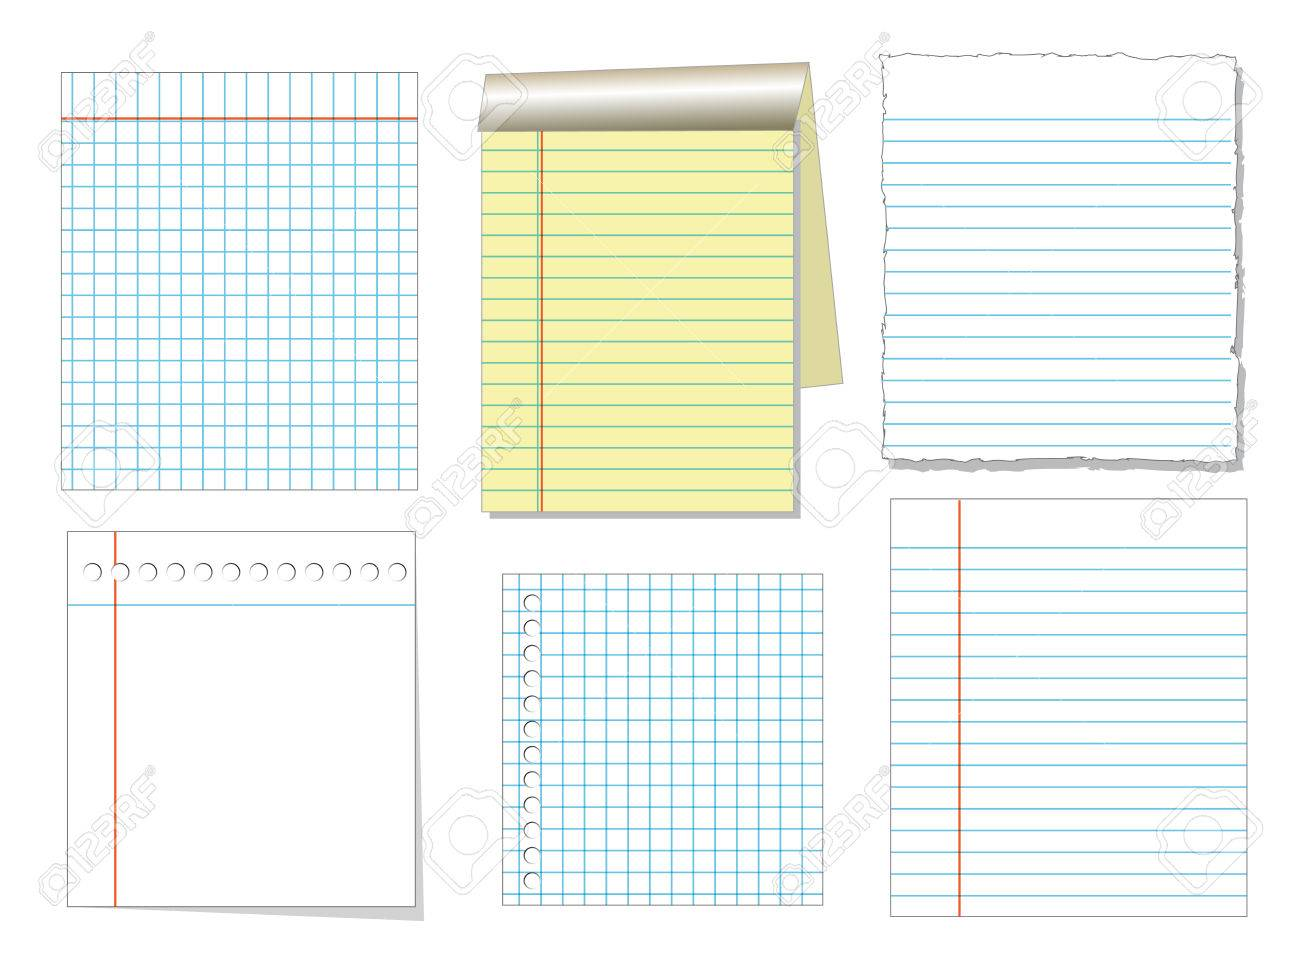 Notebook Paper Word Template Stock Share Certificate Template 80908232 Notebook  Paper And Sheet Isolate On White  Notebook Paper Word Template